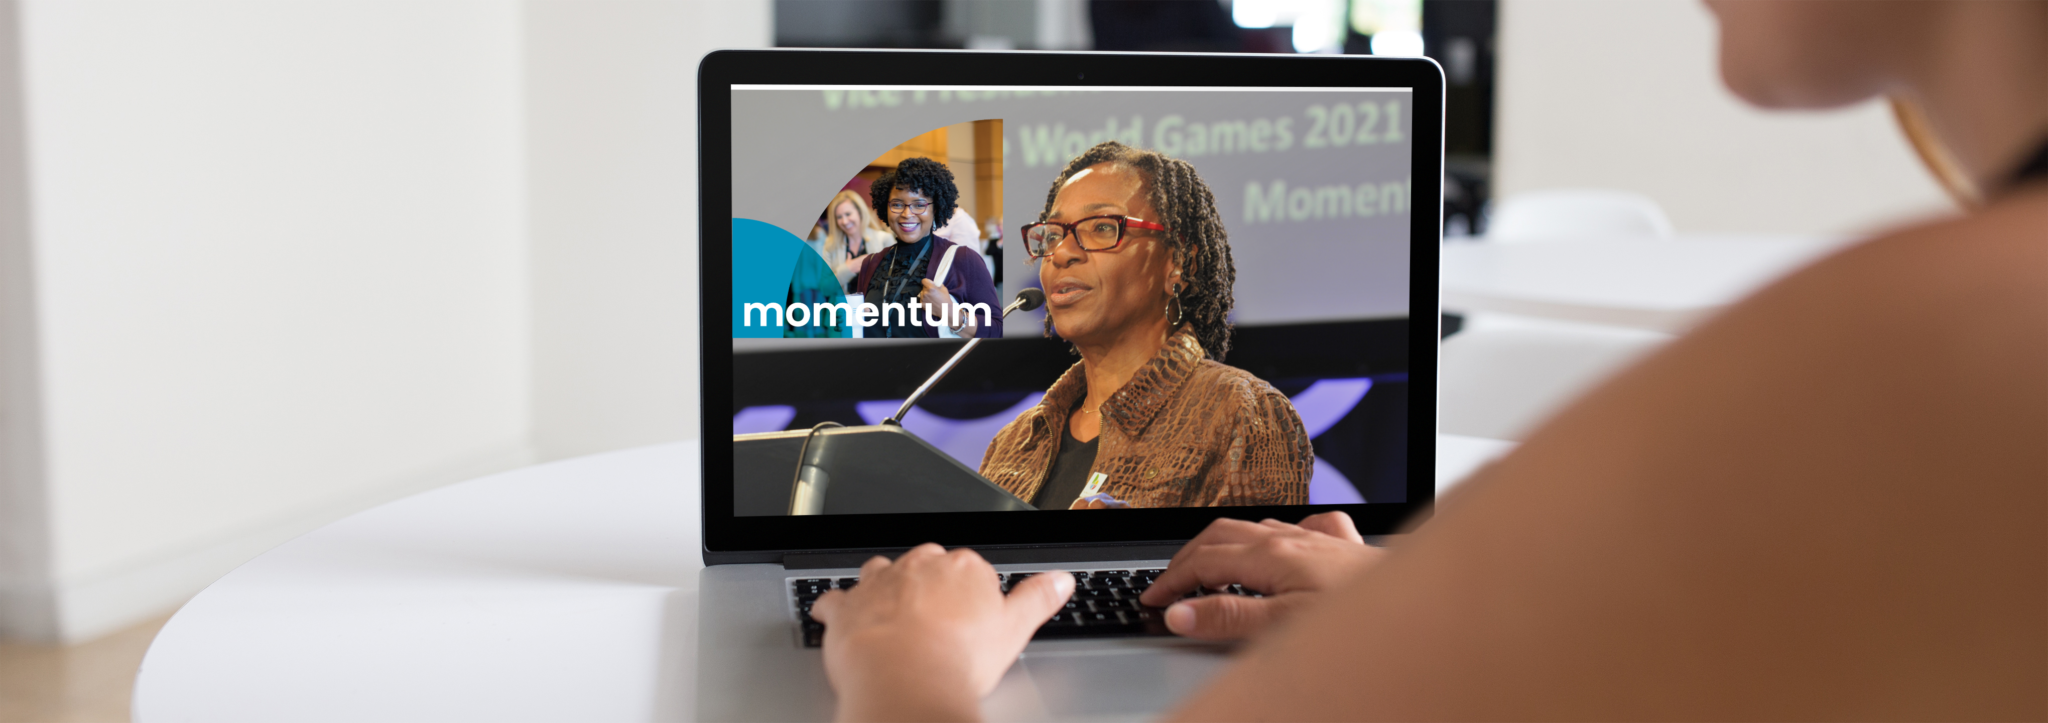 Woman At A Computer For Focus 2021